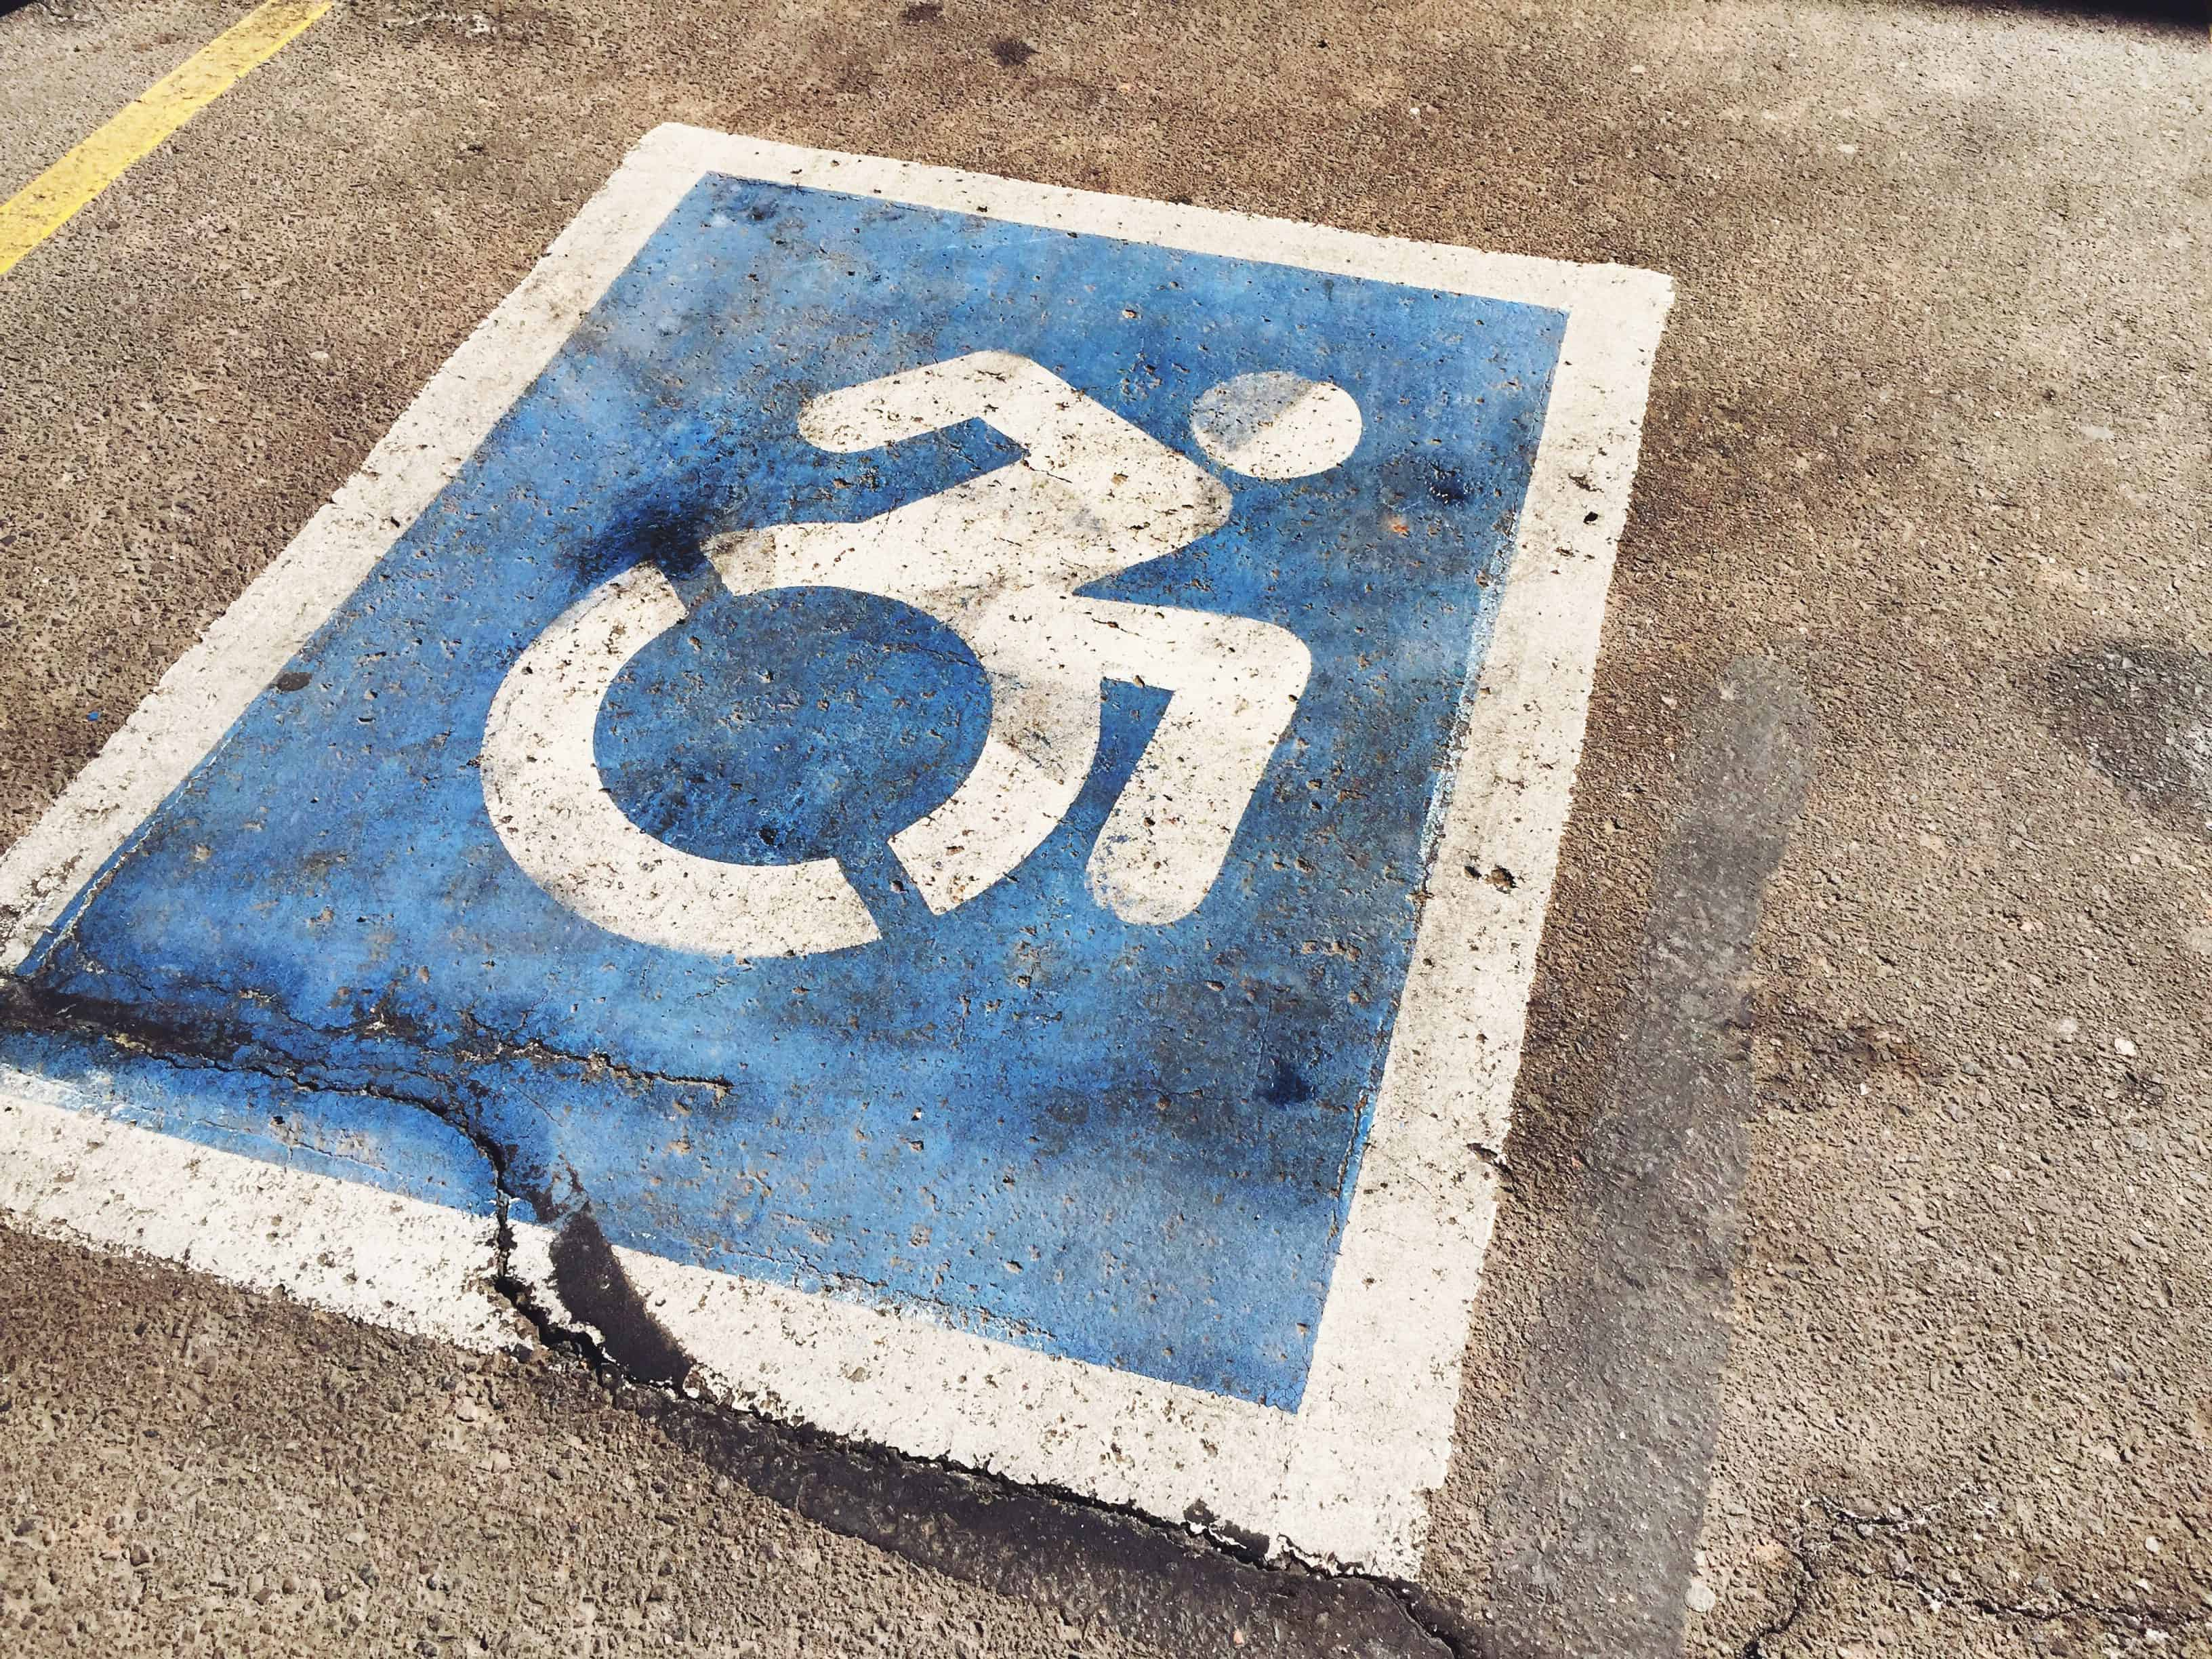 An image of handicap parking by Shawn Campbell